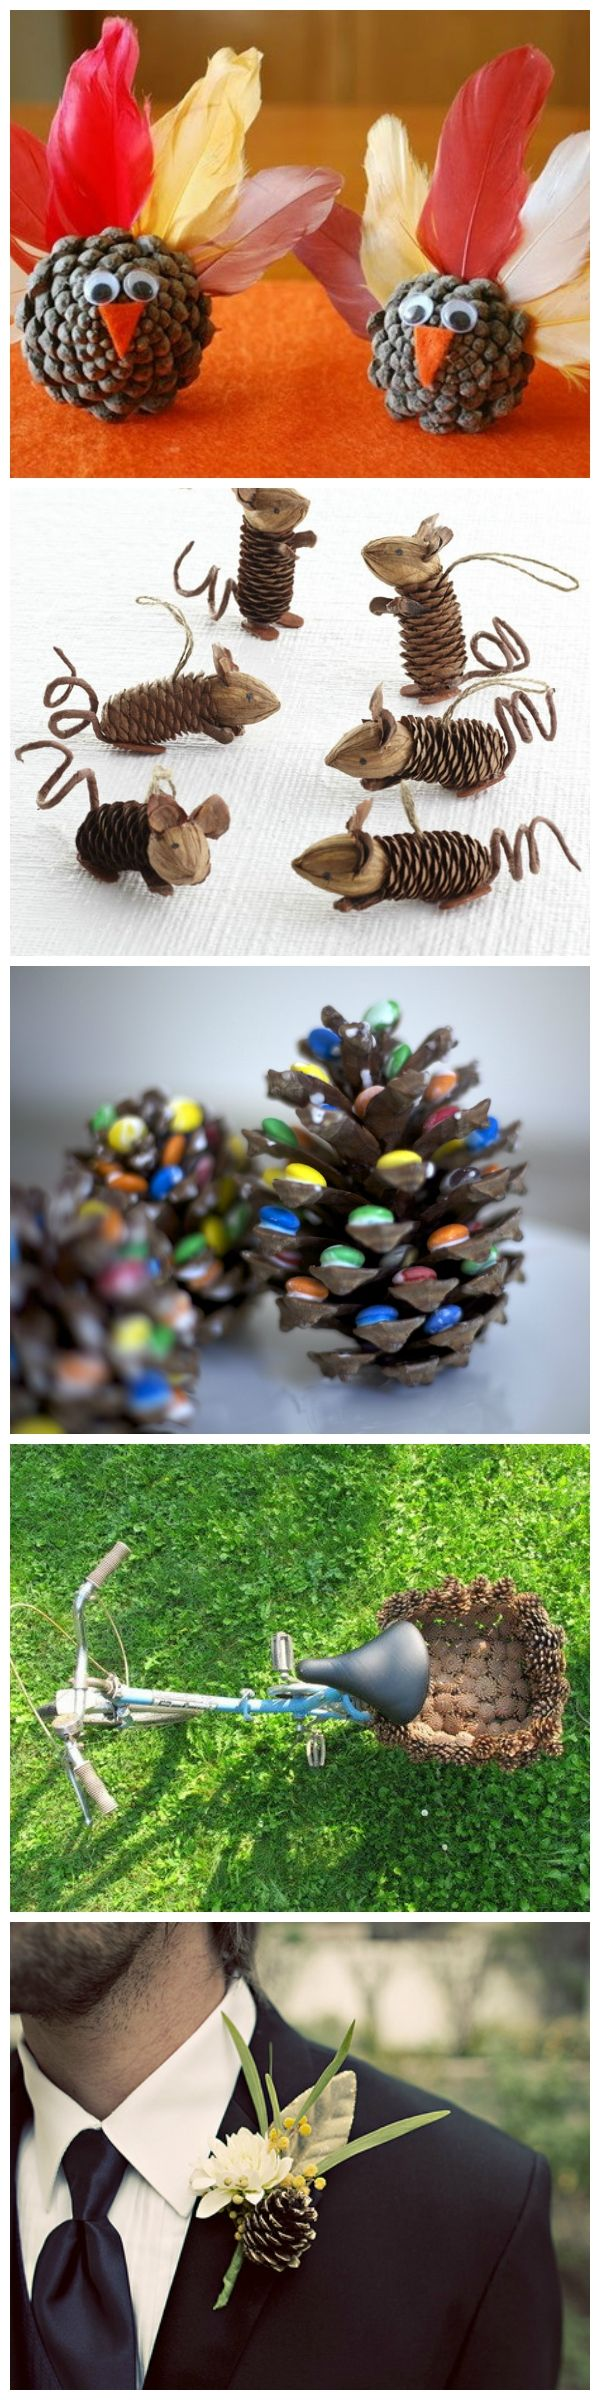 10 creative things to do with pine cones diy ideas for Things to make with fir cones